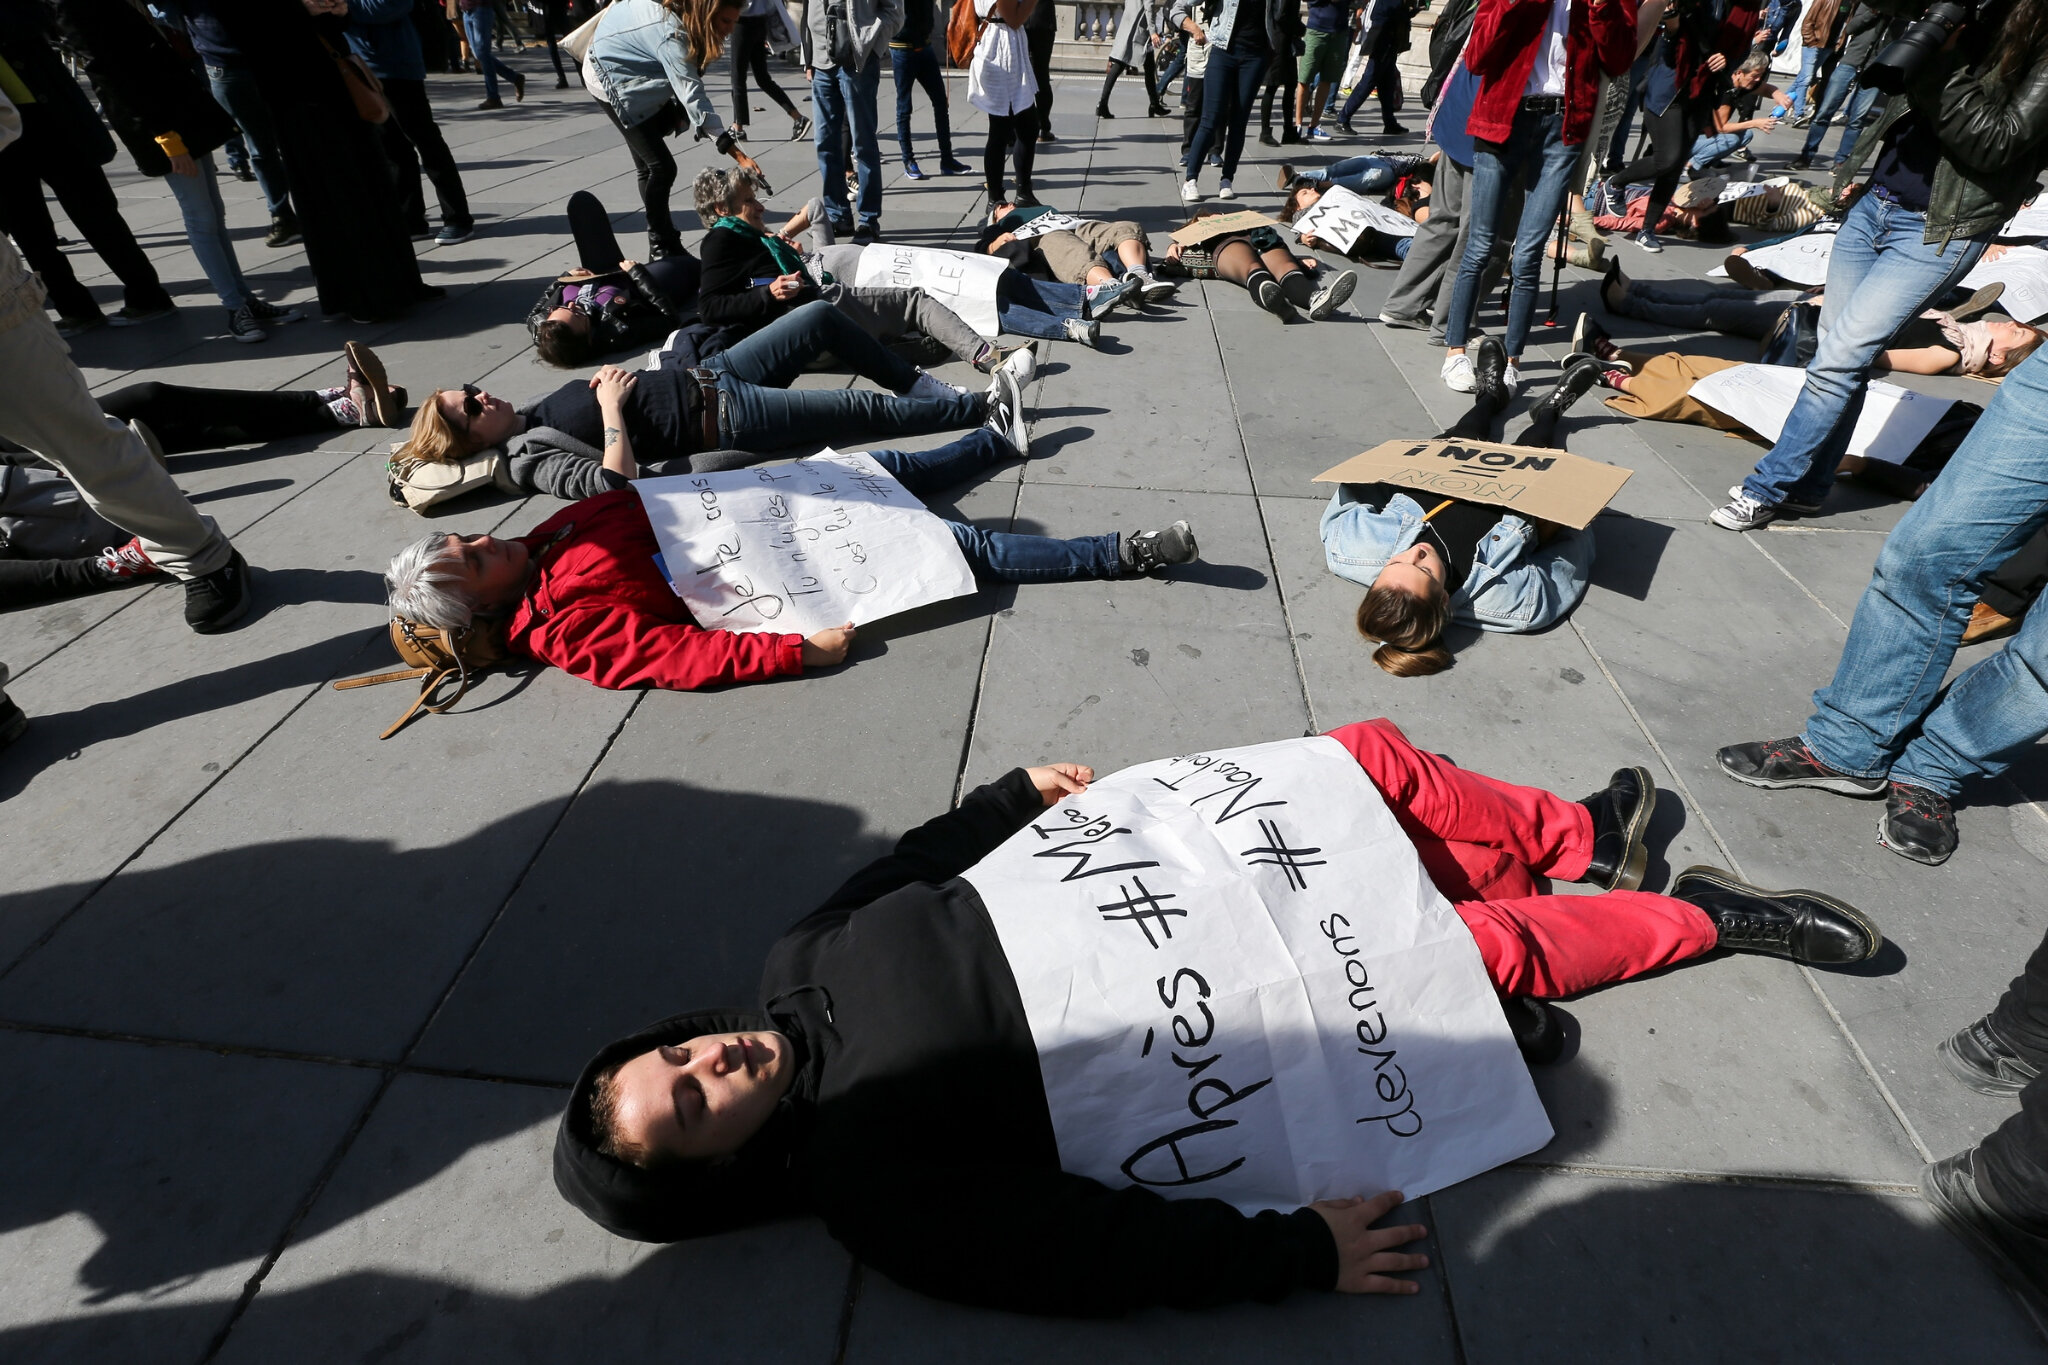 Die-In à Paris pour #MeToo. © Michel Stoupak. Sam 29.09.2018, 13h37m46.